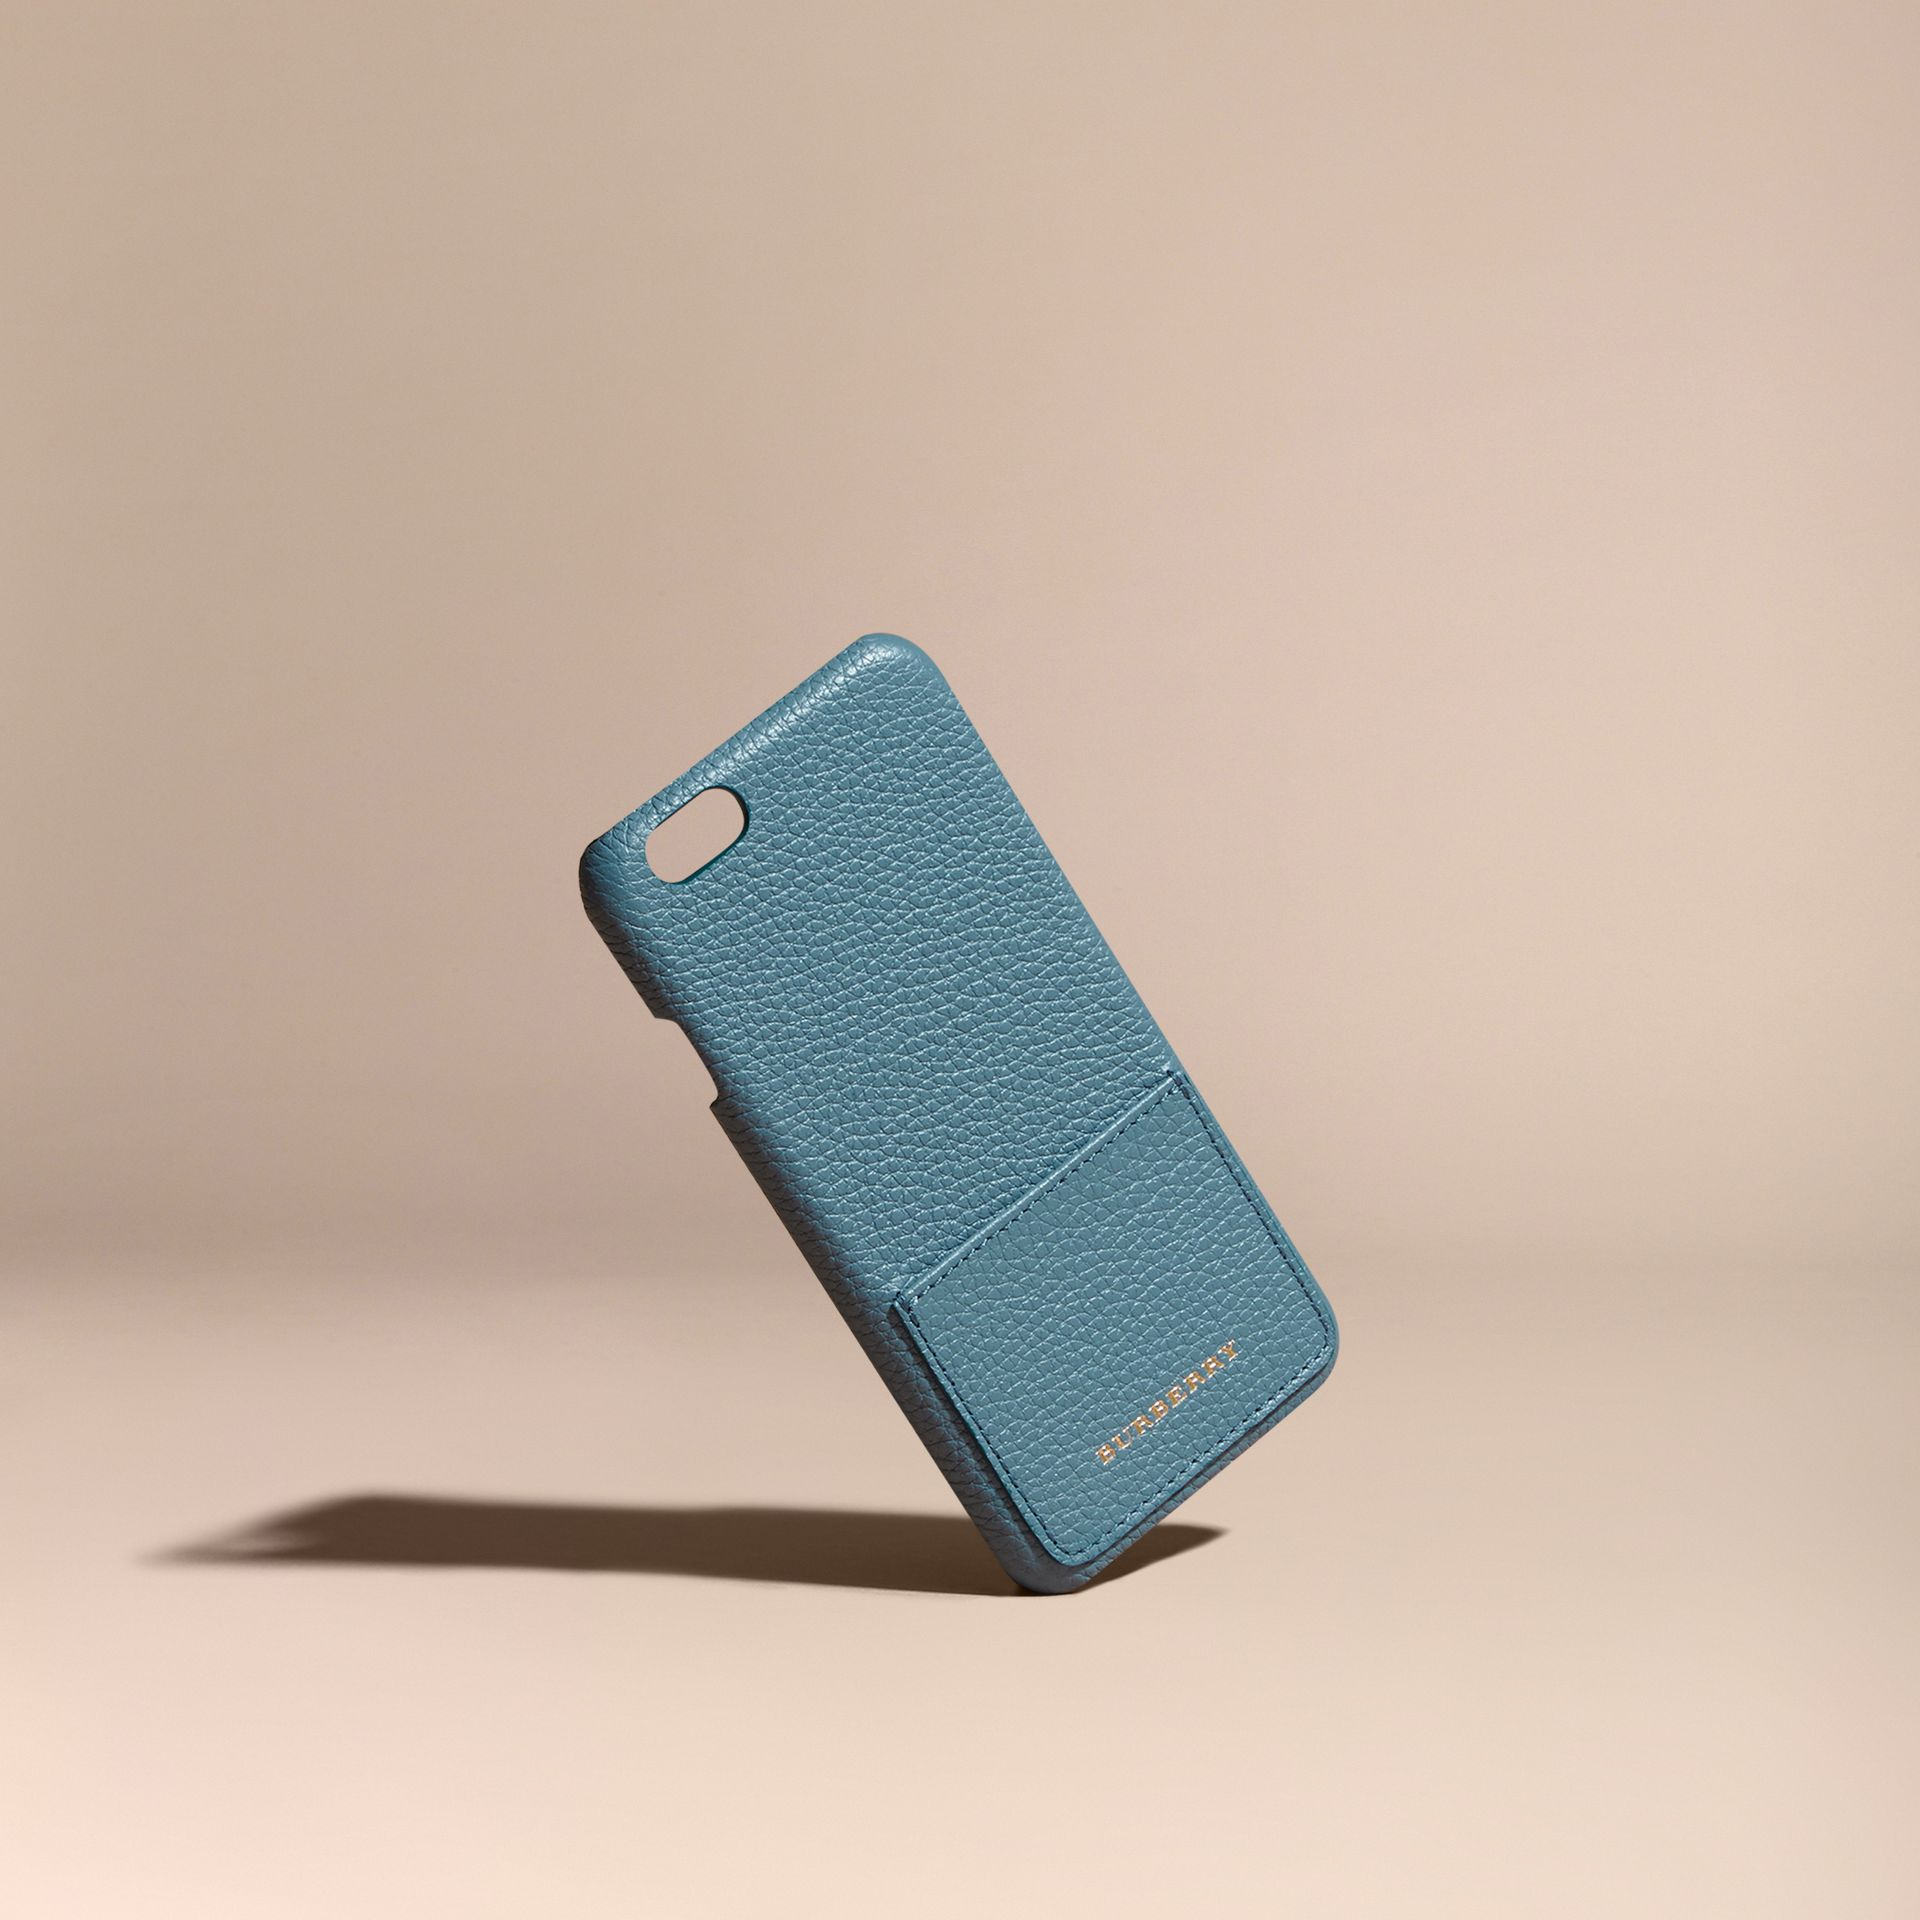 Grainy Leather iPhone 6 Case in Dusty Teal - gallery image 1